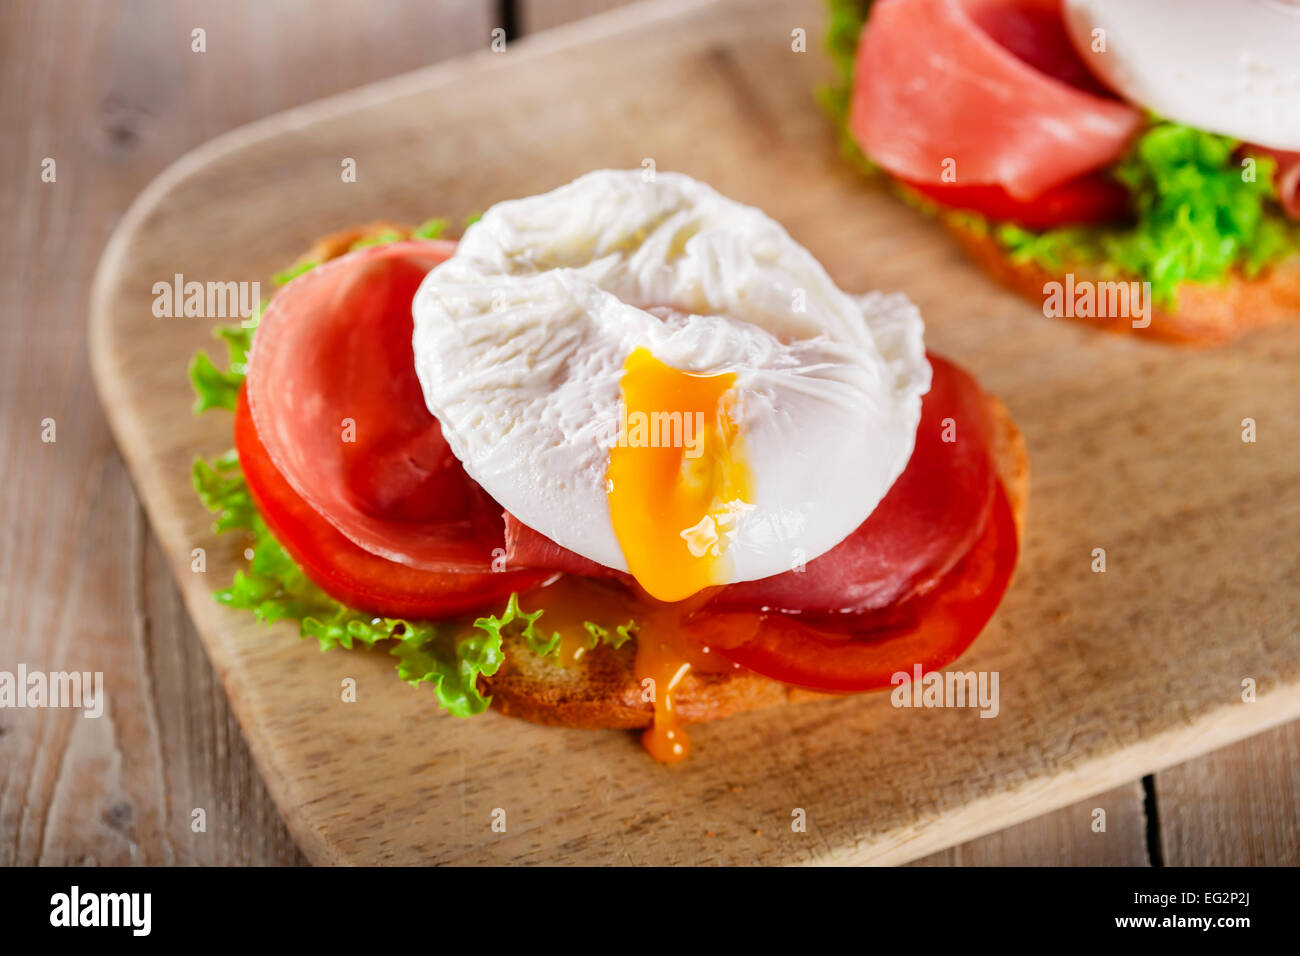 sandwich with prosciutto and poached egg tomato - Stock Image